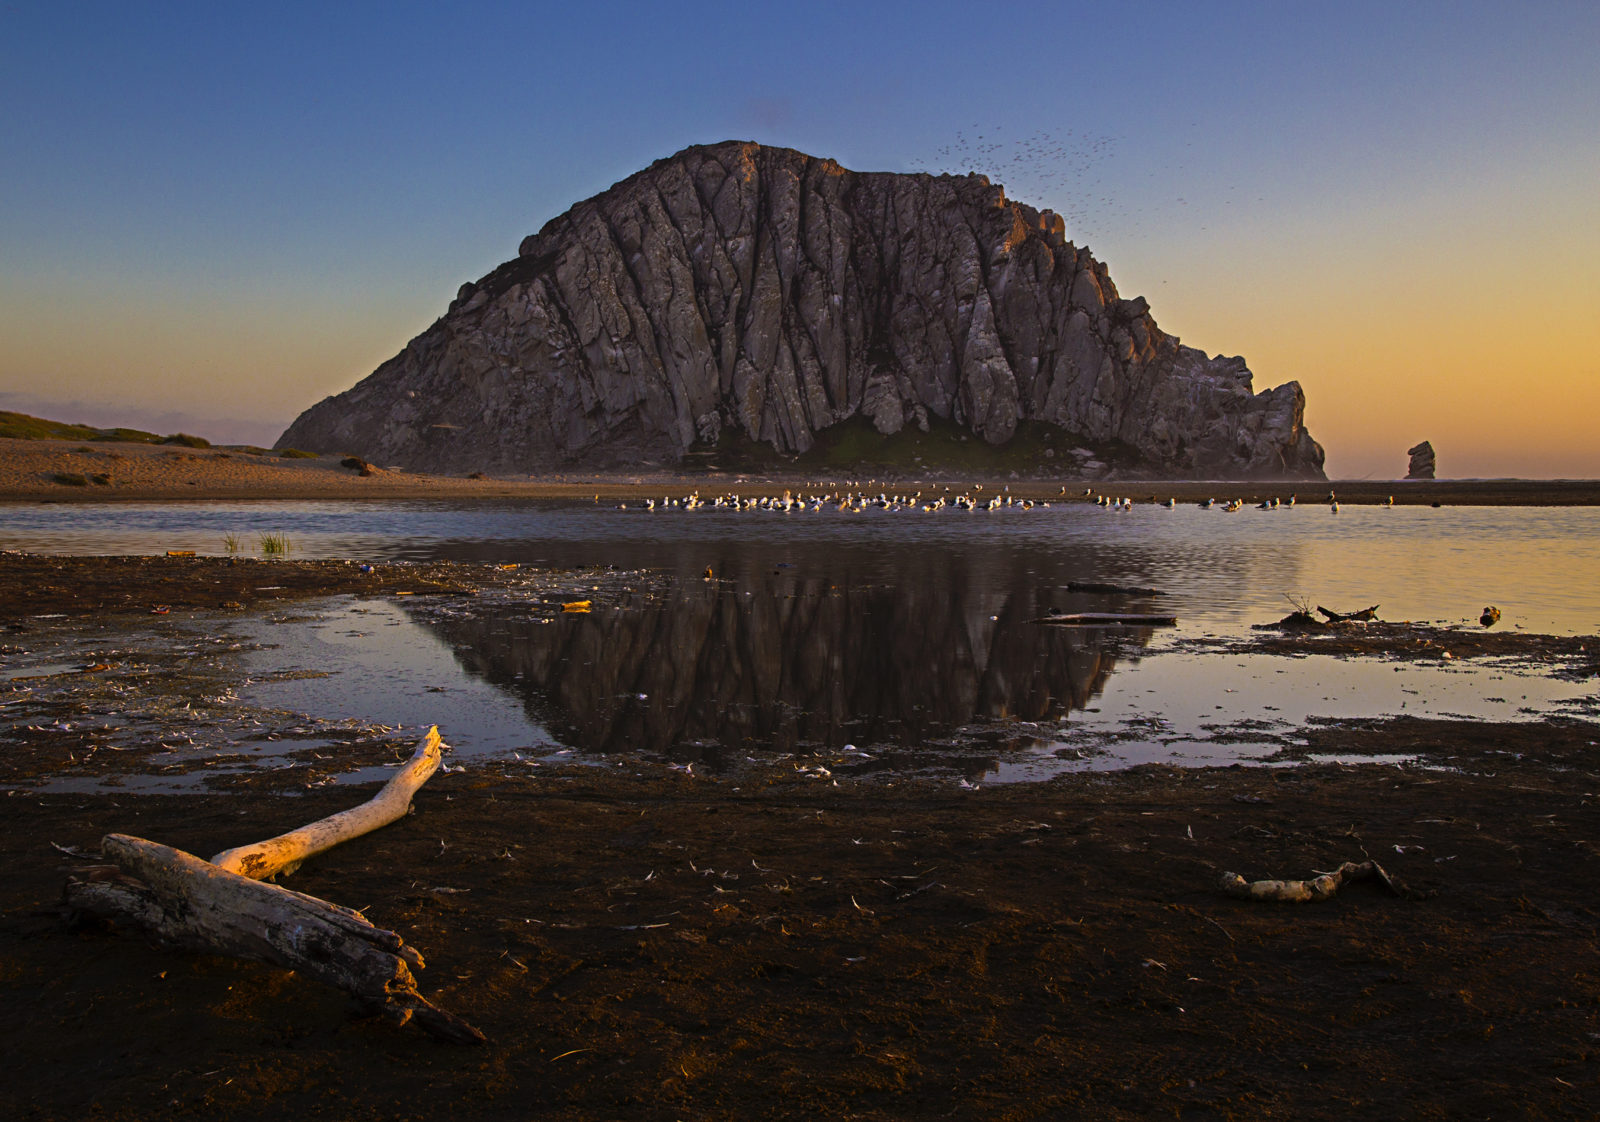 The Rock at Morro Bay